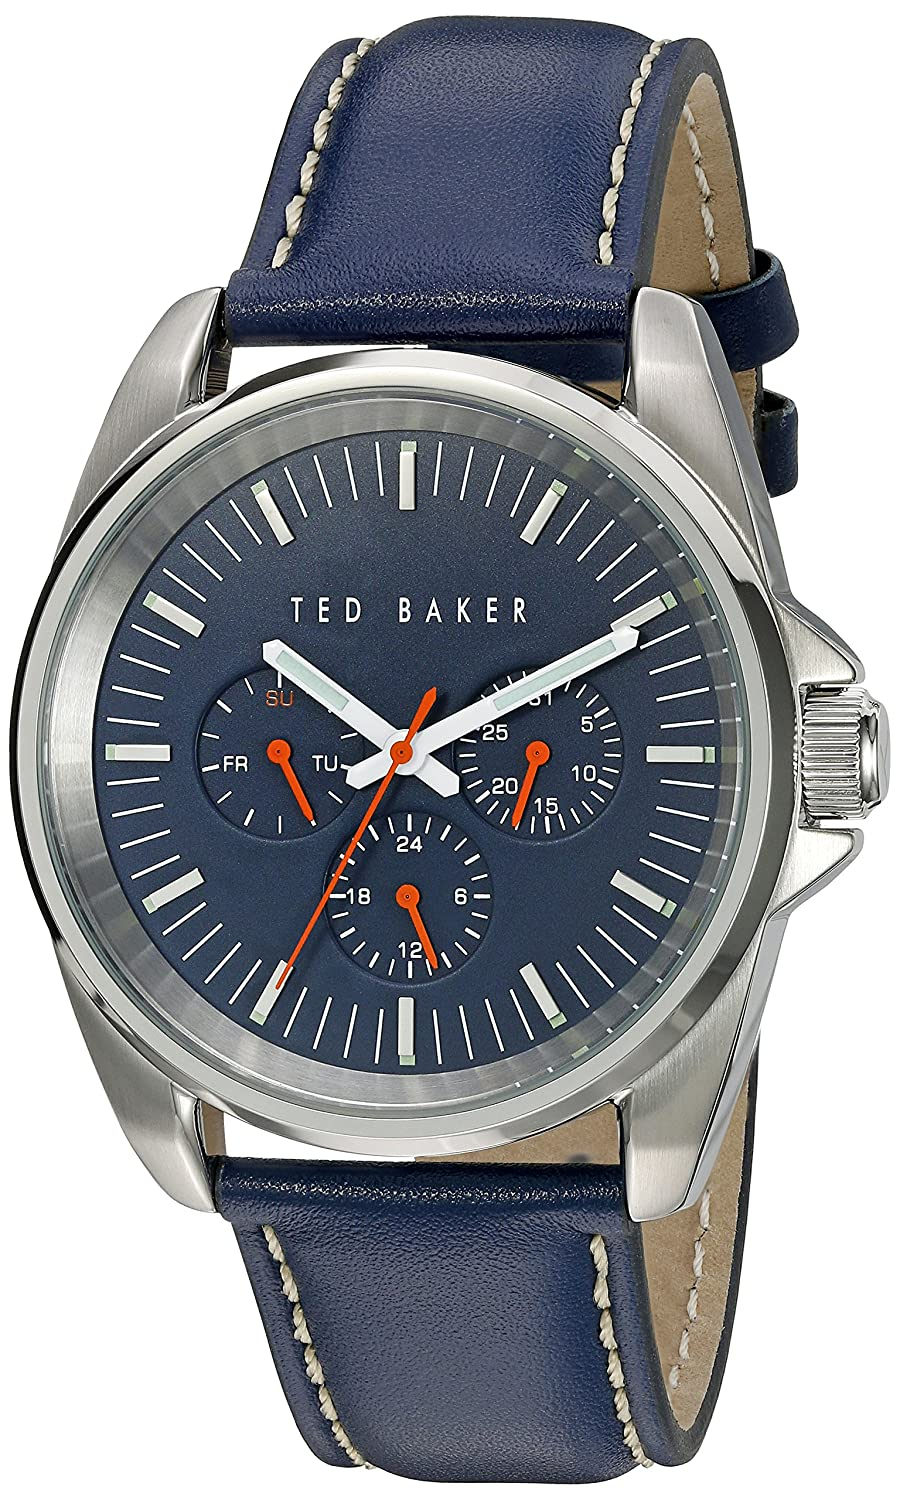 5b78f47d869e Amazon.com  Ted Baker Men s 10025259 Vintage Analog Display Japanese Quartz  Blue Watch  Ted Baker  Watches